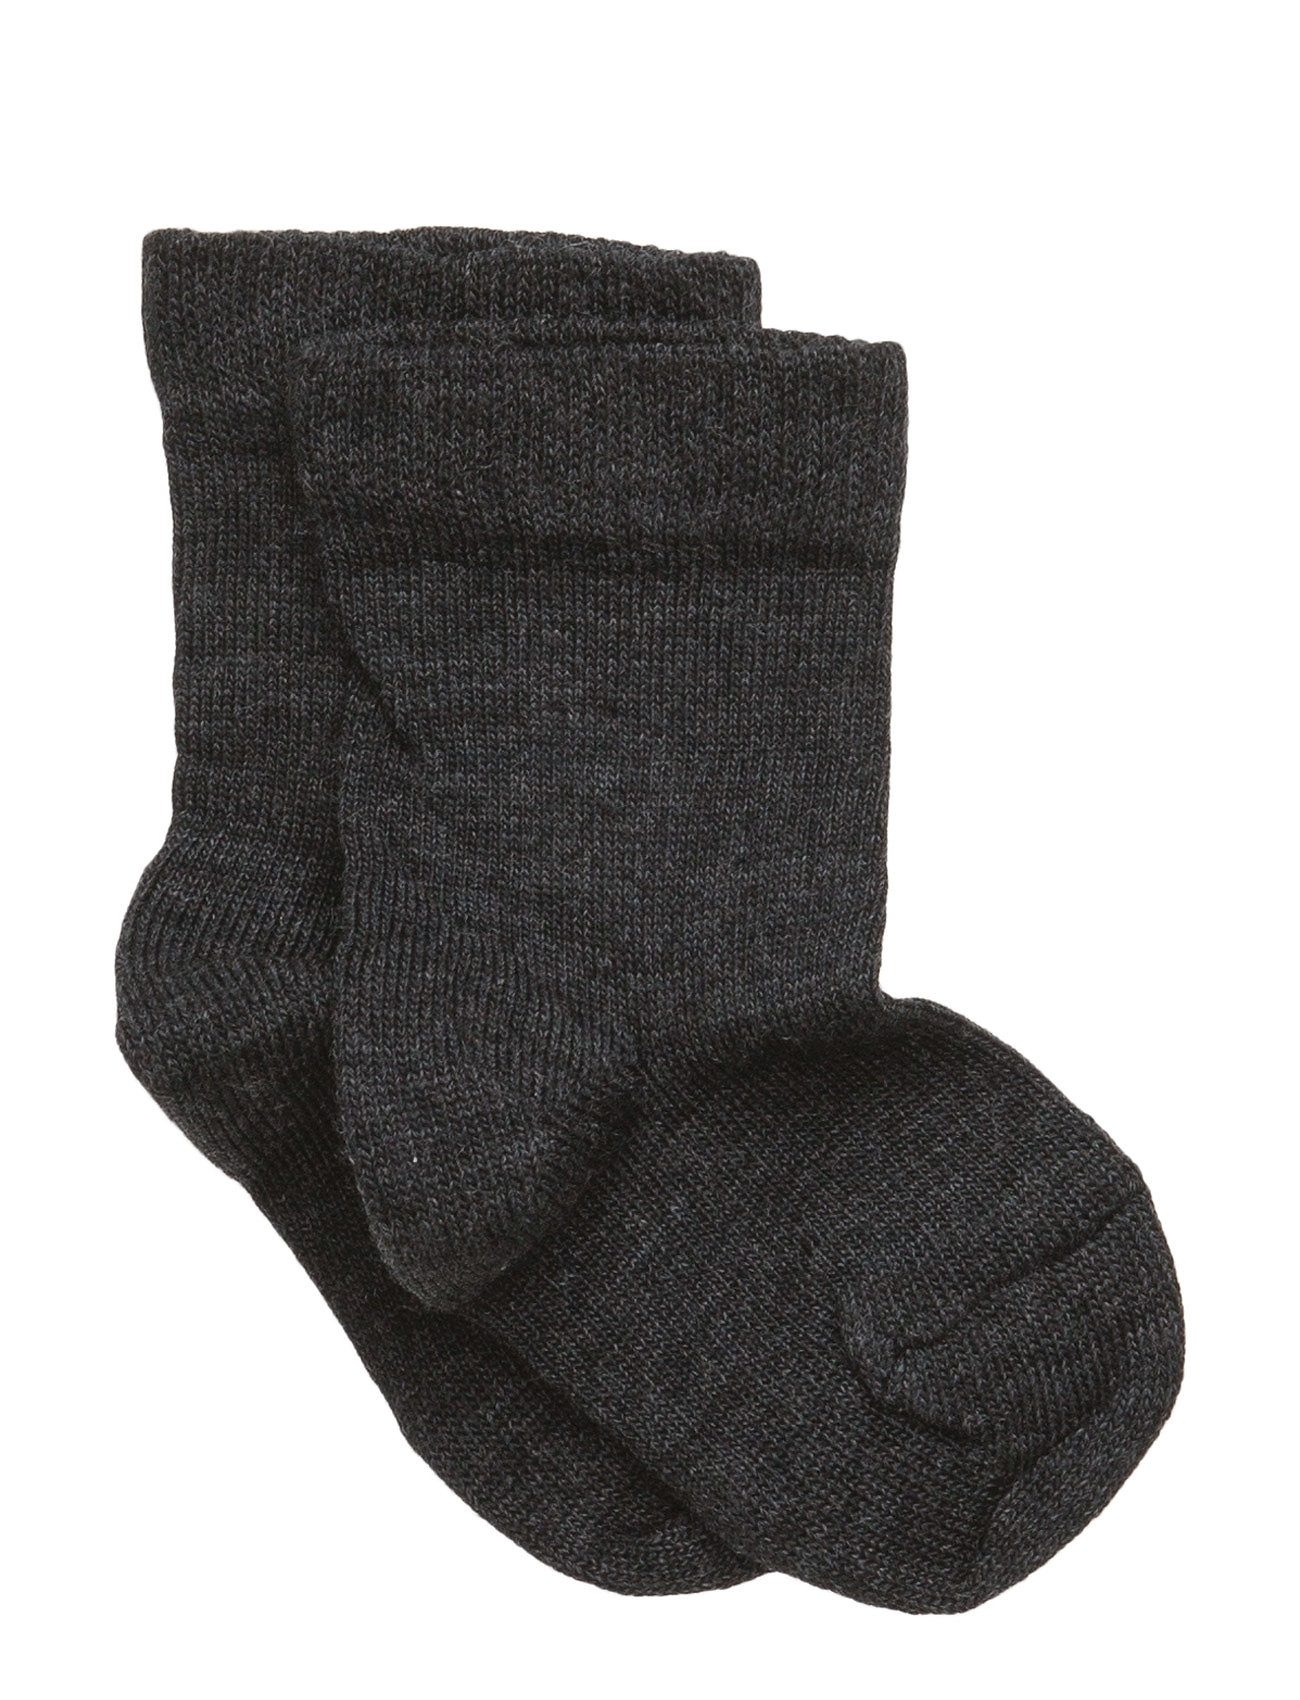 Melton Classic Superwash wool sock - DARK GREY MELANGE